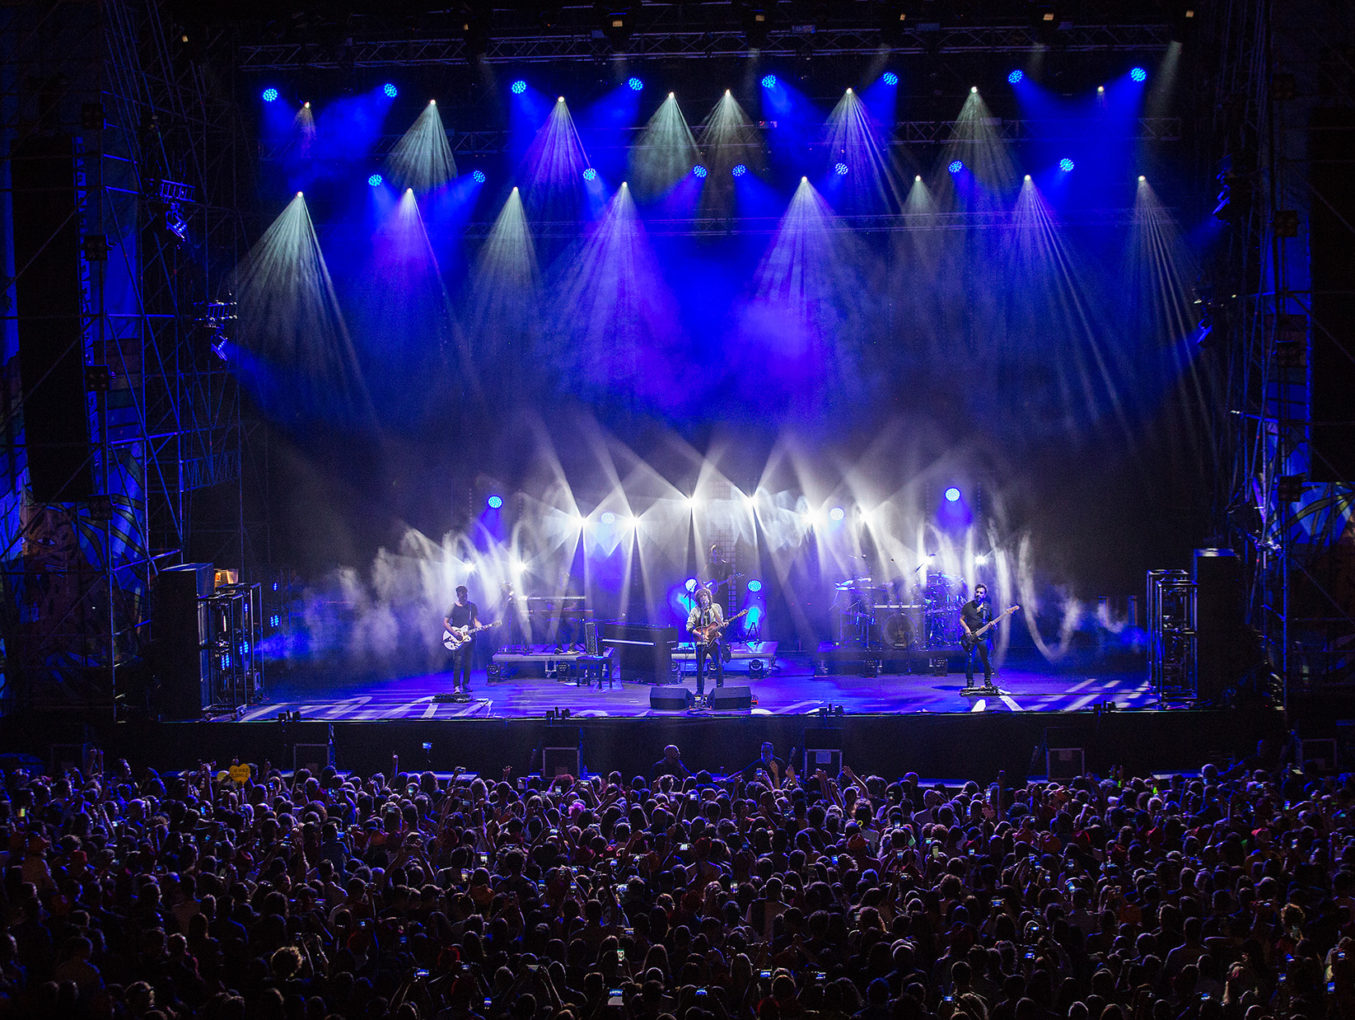 Ermal Meta: Non abbiamo armi tour 2018, con ROBE lighting e Robert Juliat